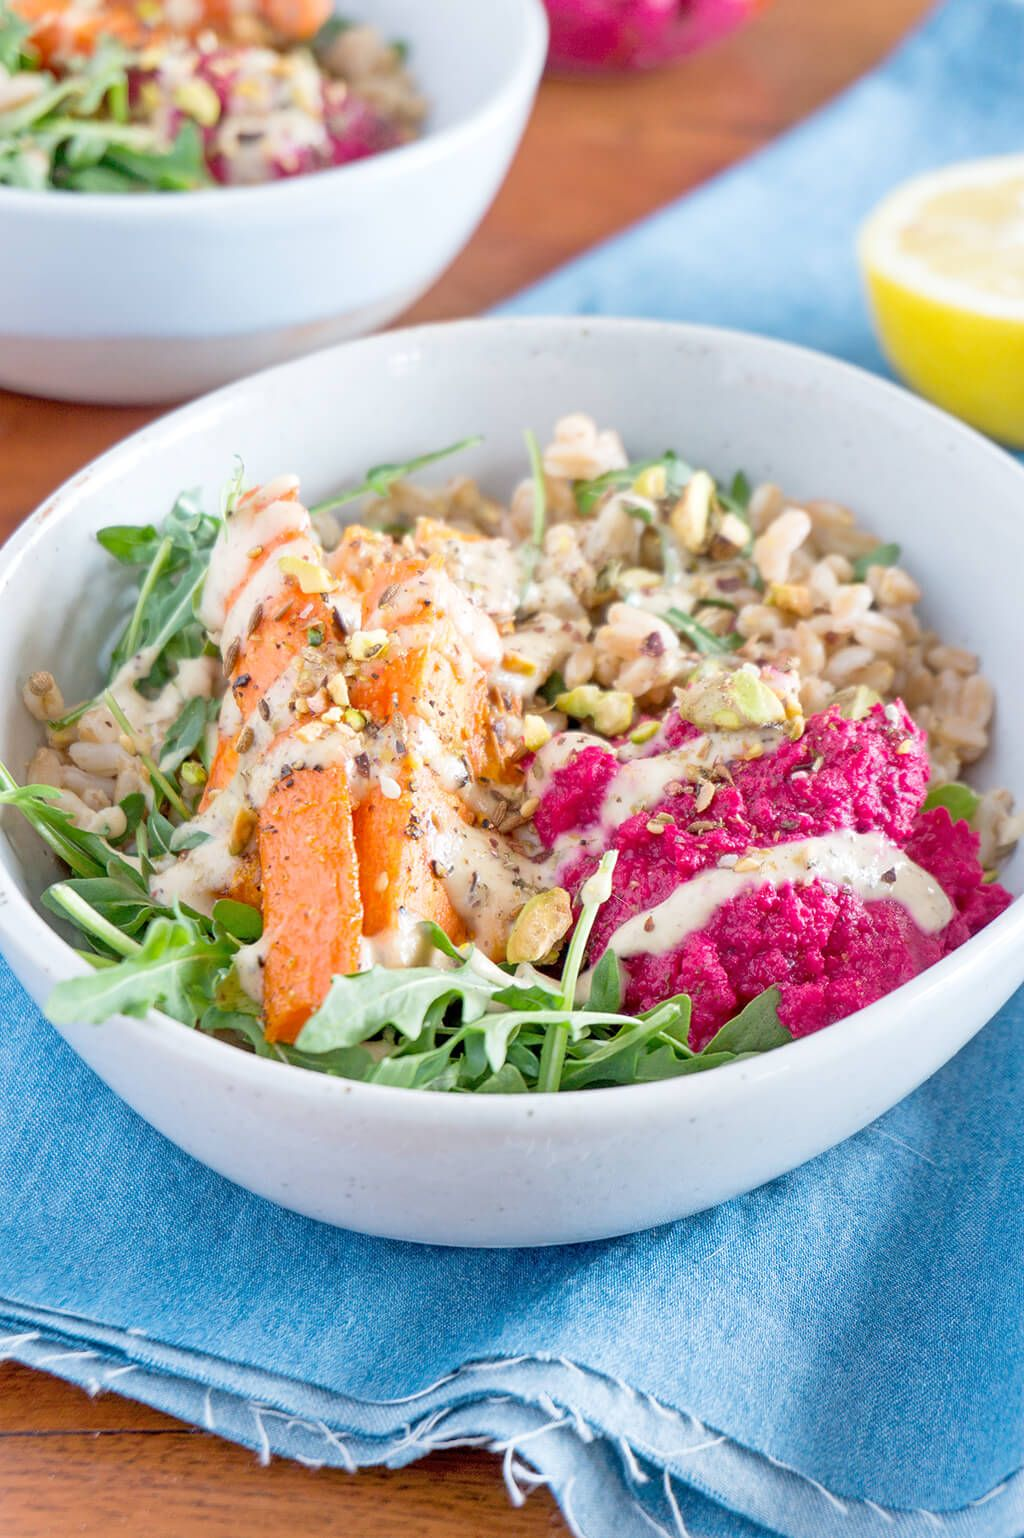 Packed with nutrients, this Farro Salad and Spiced Tahini Dressing is one of the most delicious vegetarian and vegan lunches I make. It's great for meal prep as well. #VEGETARIAN | #Recipes at www.OatandSesame.com